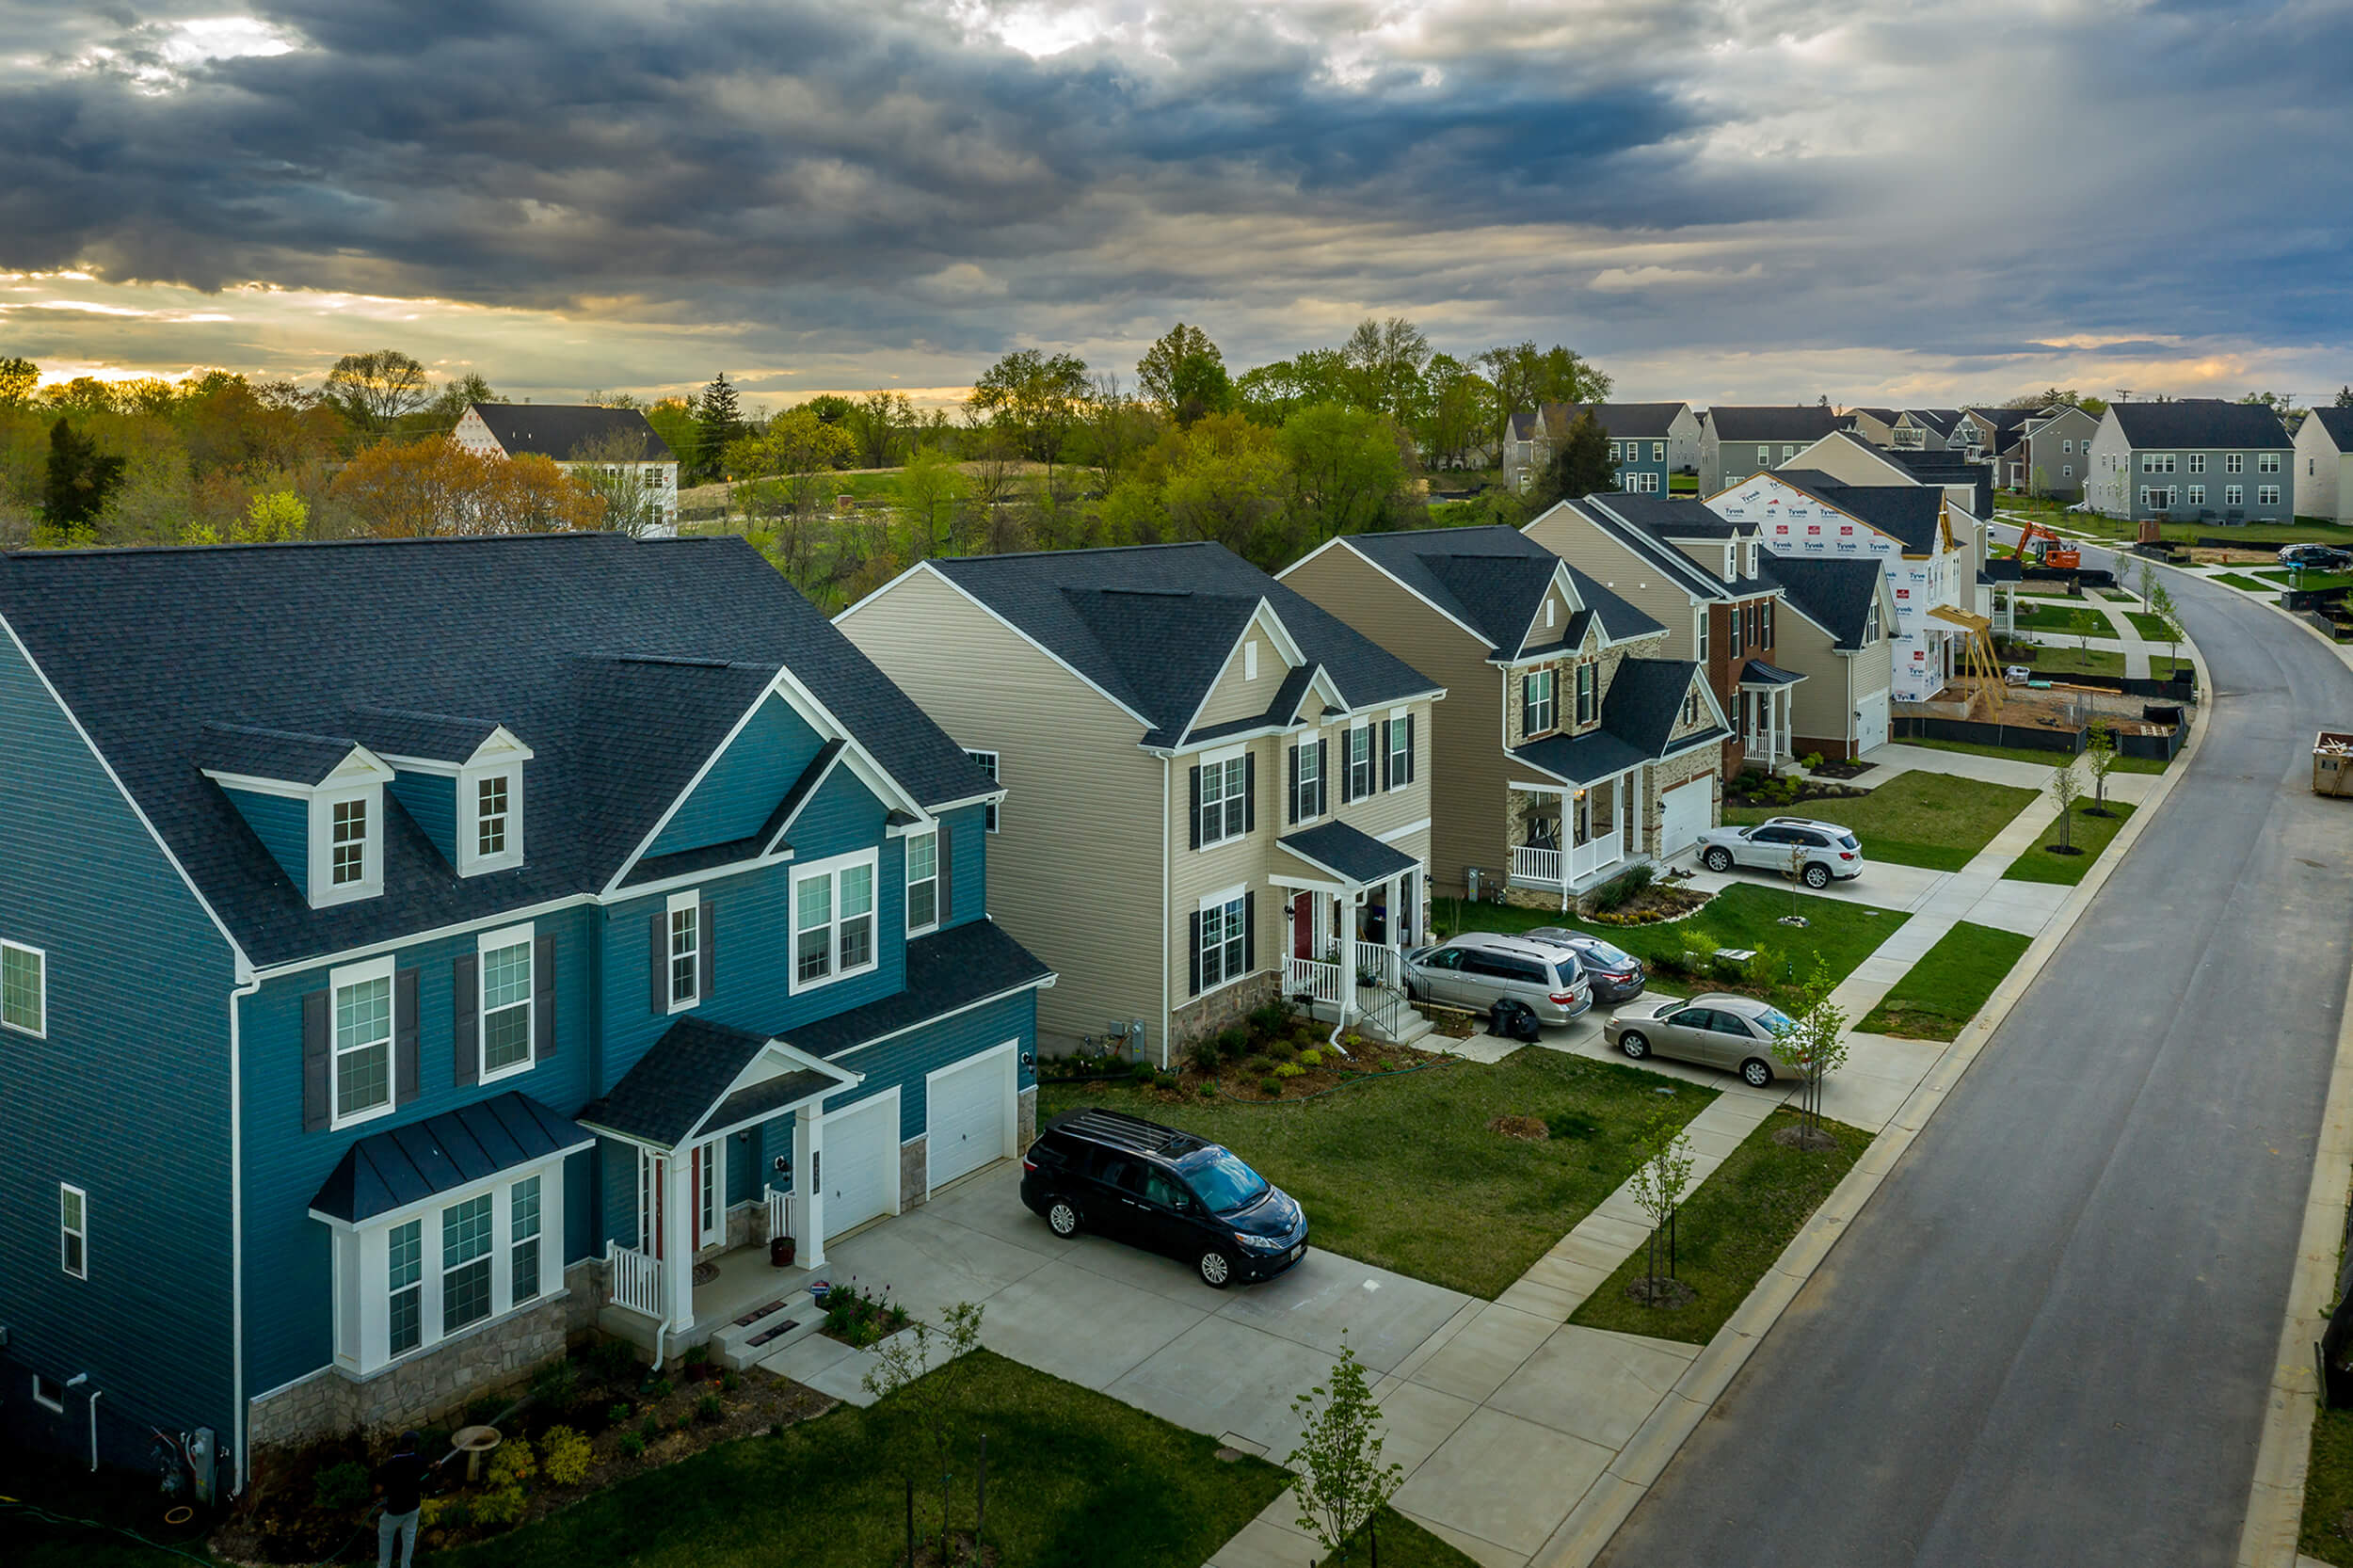 neighborhood of residential roofing projects